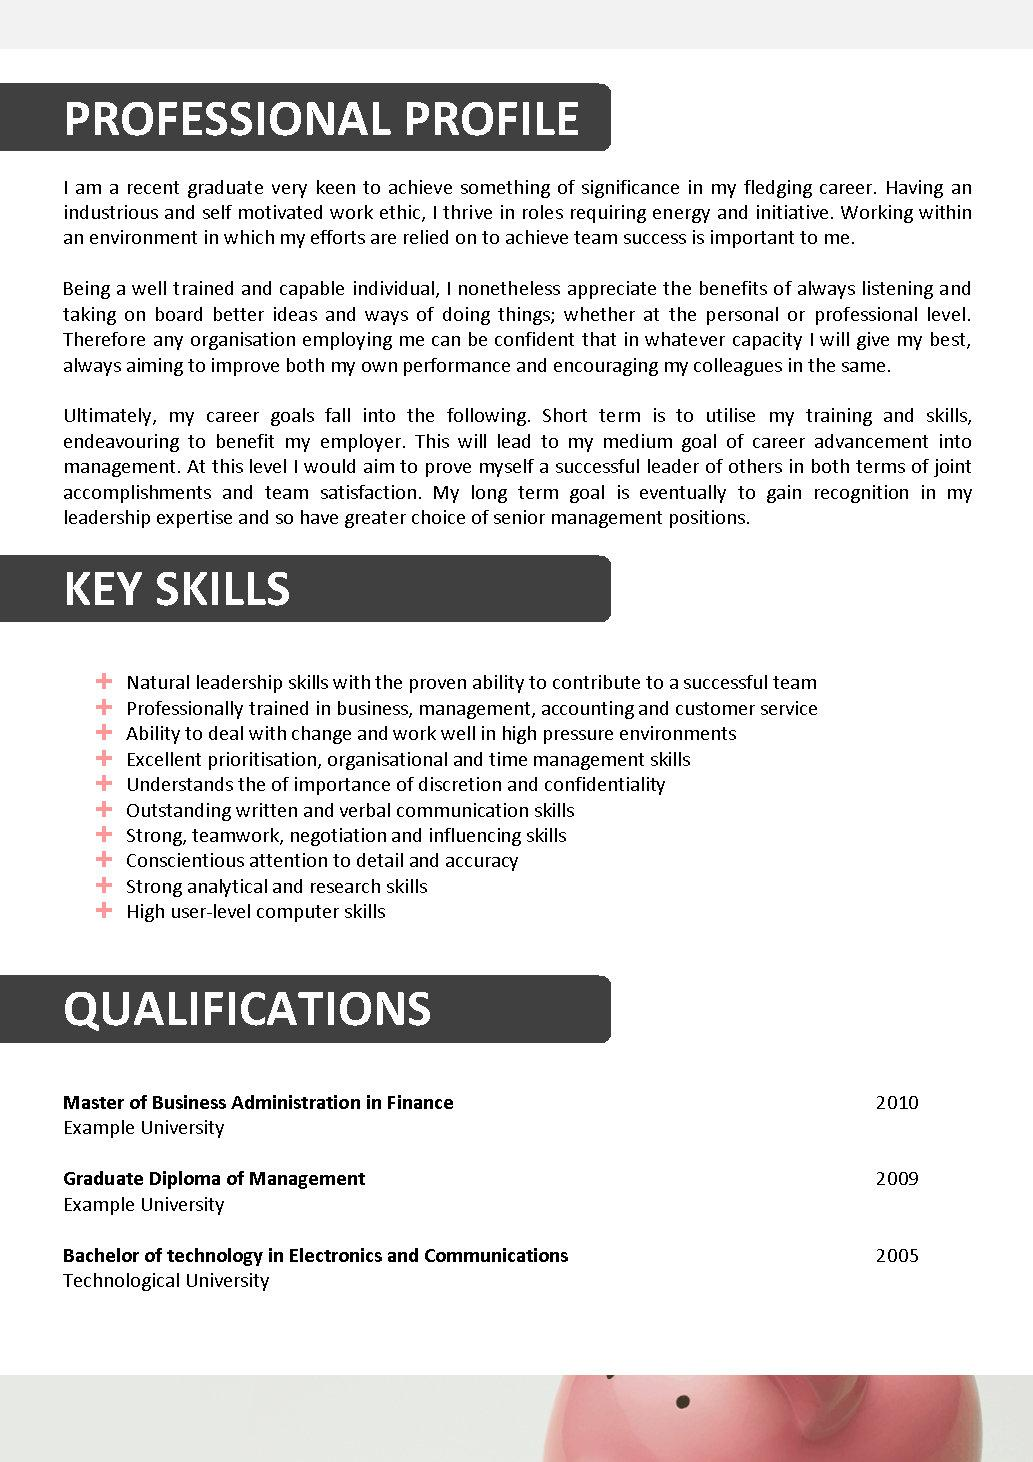 resume questions for teachers profesional resume for job resume questions for teachers sample teacher interview questions and answers for resume hospitality resumes teachers resumes